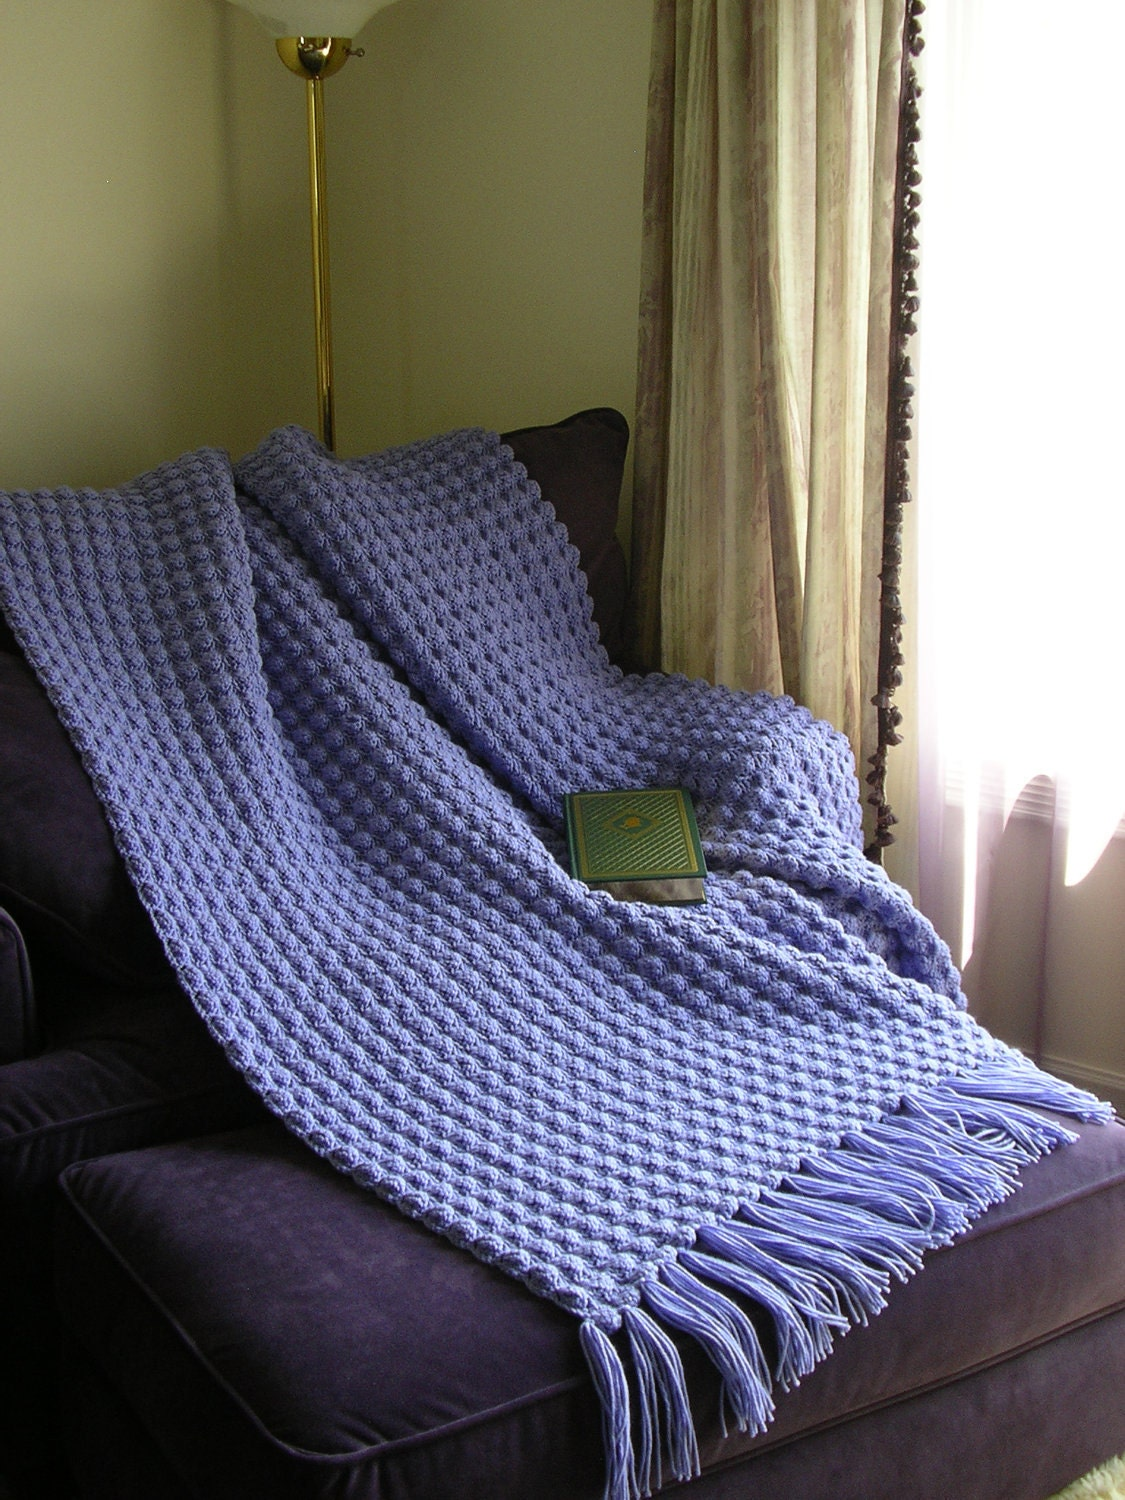 il 170x135.244026413 Etsy Crochet Treasury: For Sick Days